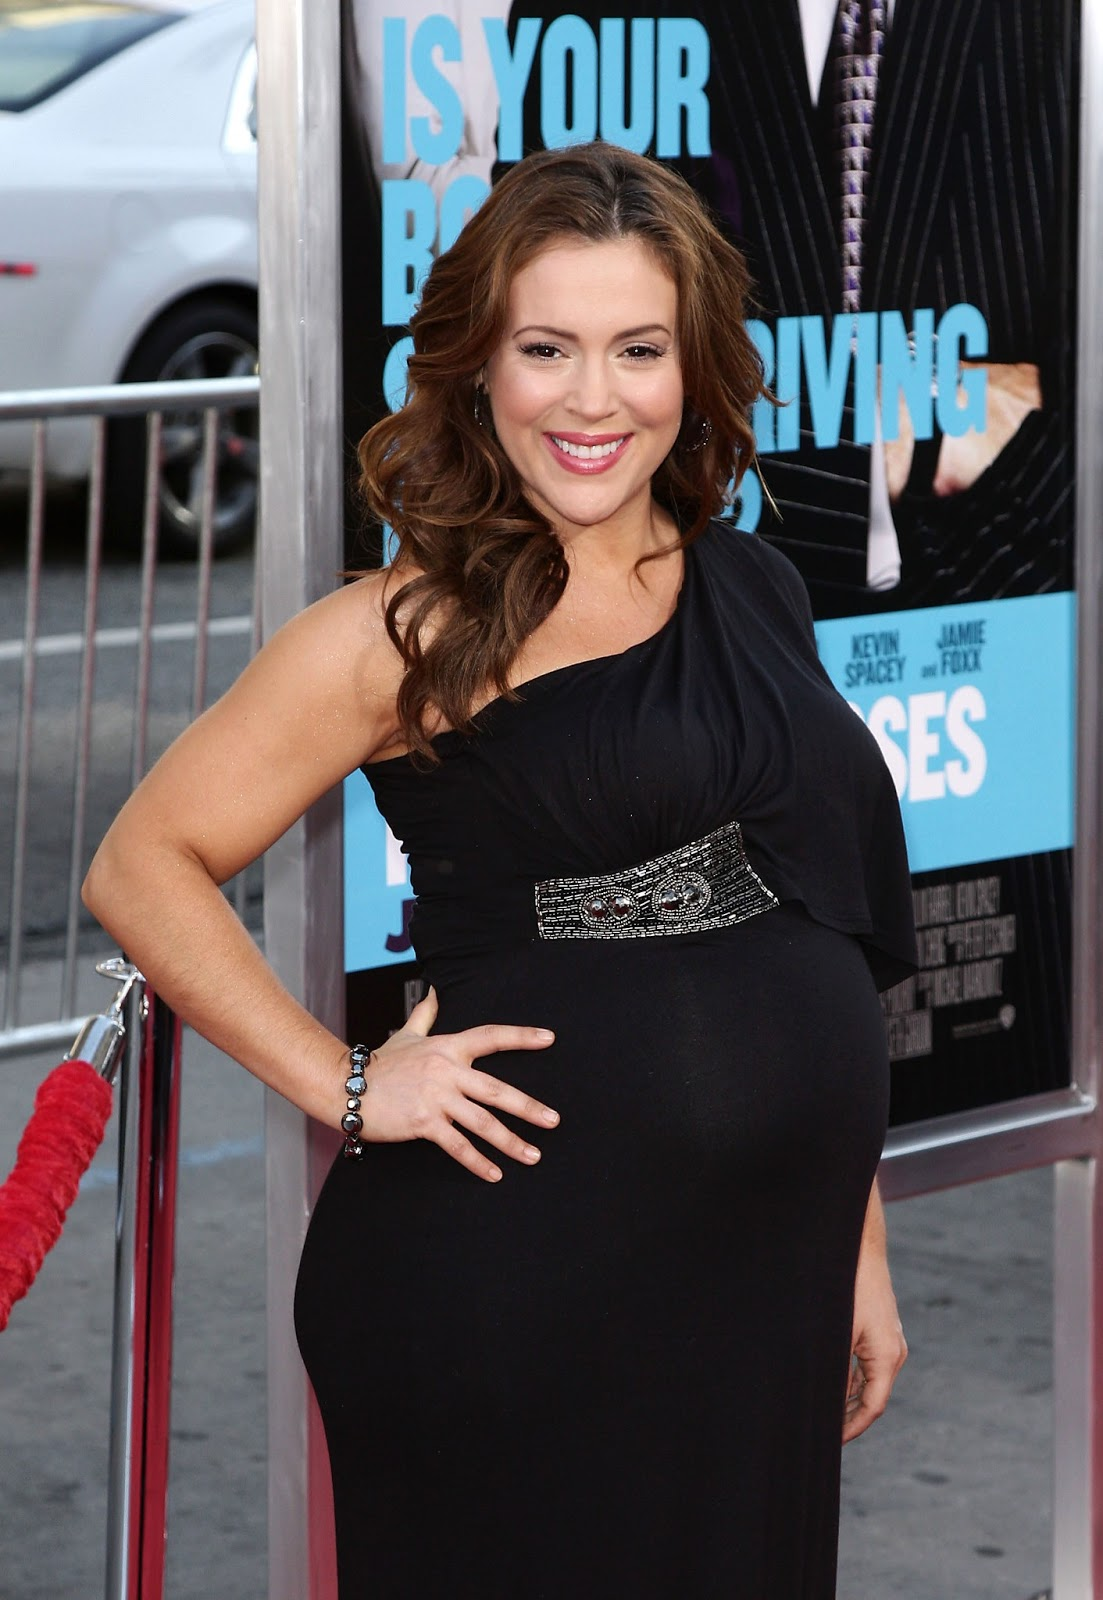 Alyssa+Milano+Pregnant+Pic+2013+03 An aide to Mitt Romney has sworn to put the kibosh on smut peddlers should ...